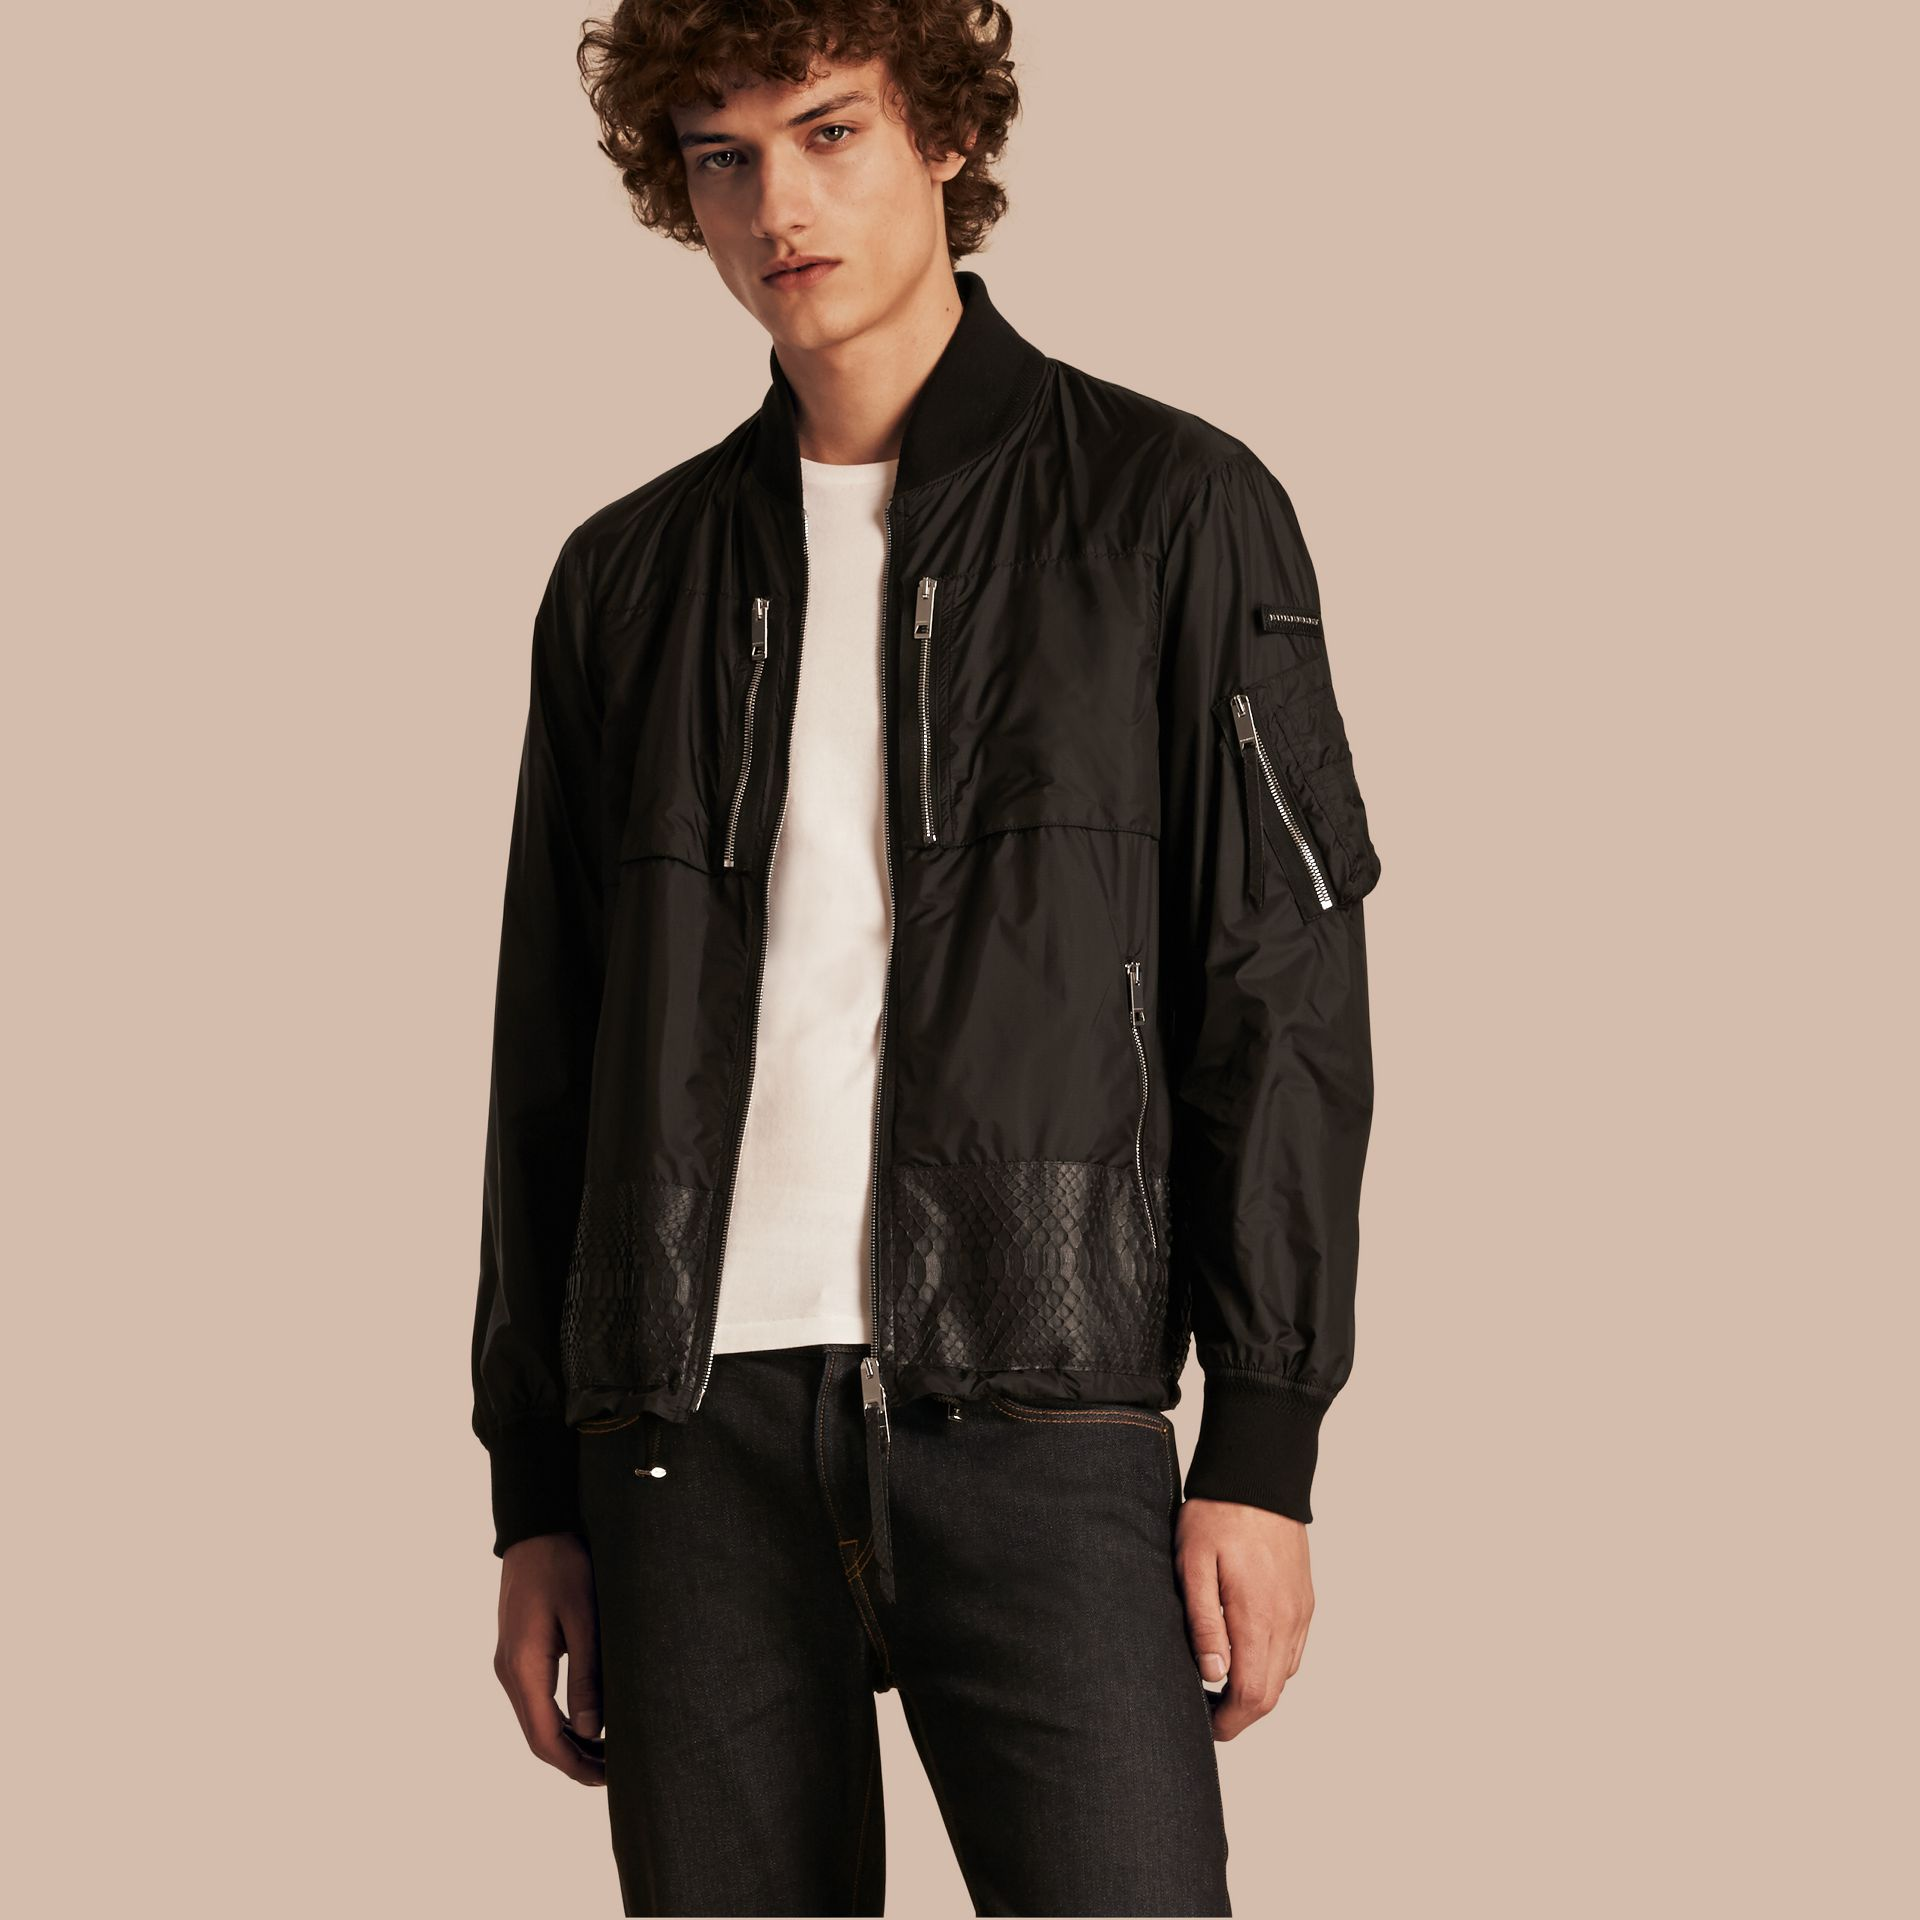 Lightweight Technical Bomber Jacket with Snakeskin in Black - Men | Burberry Canada - gallery image 1